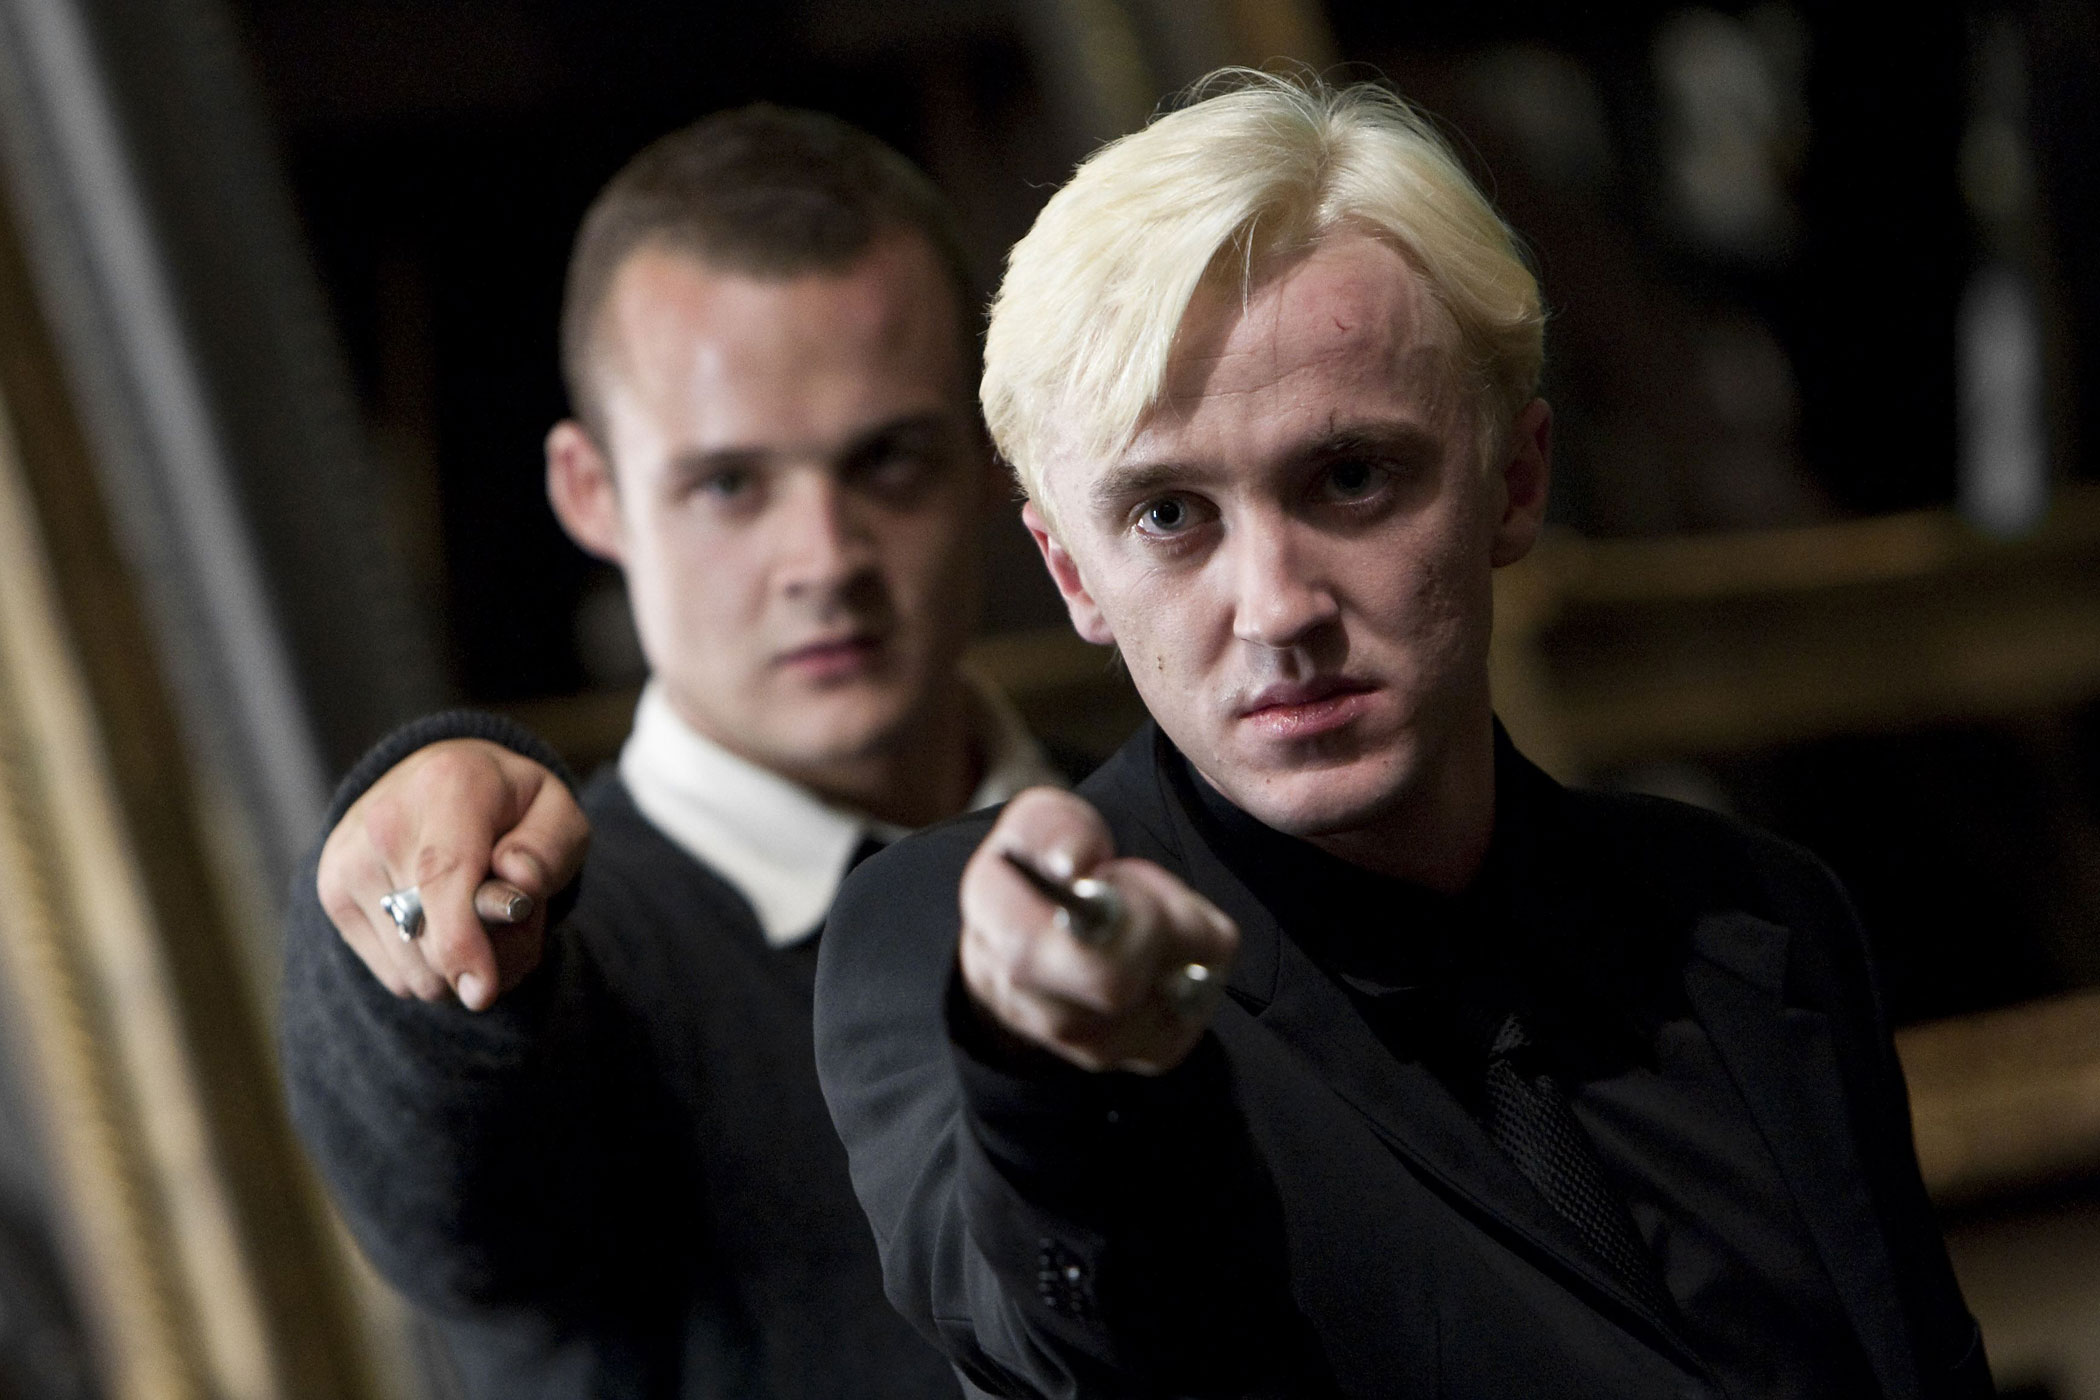 Tom Felton, right, as Draco Malfoy in Harry Potter and the Deathly Hallows — Part 2